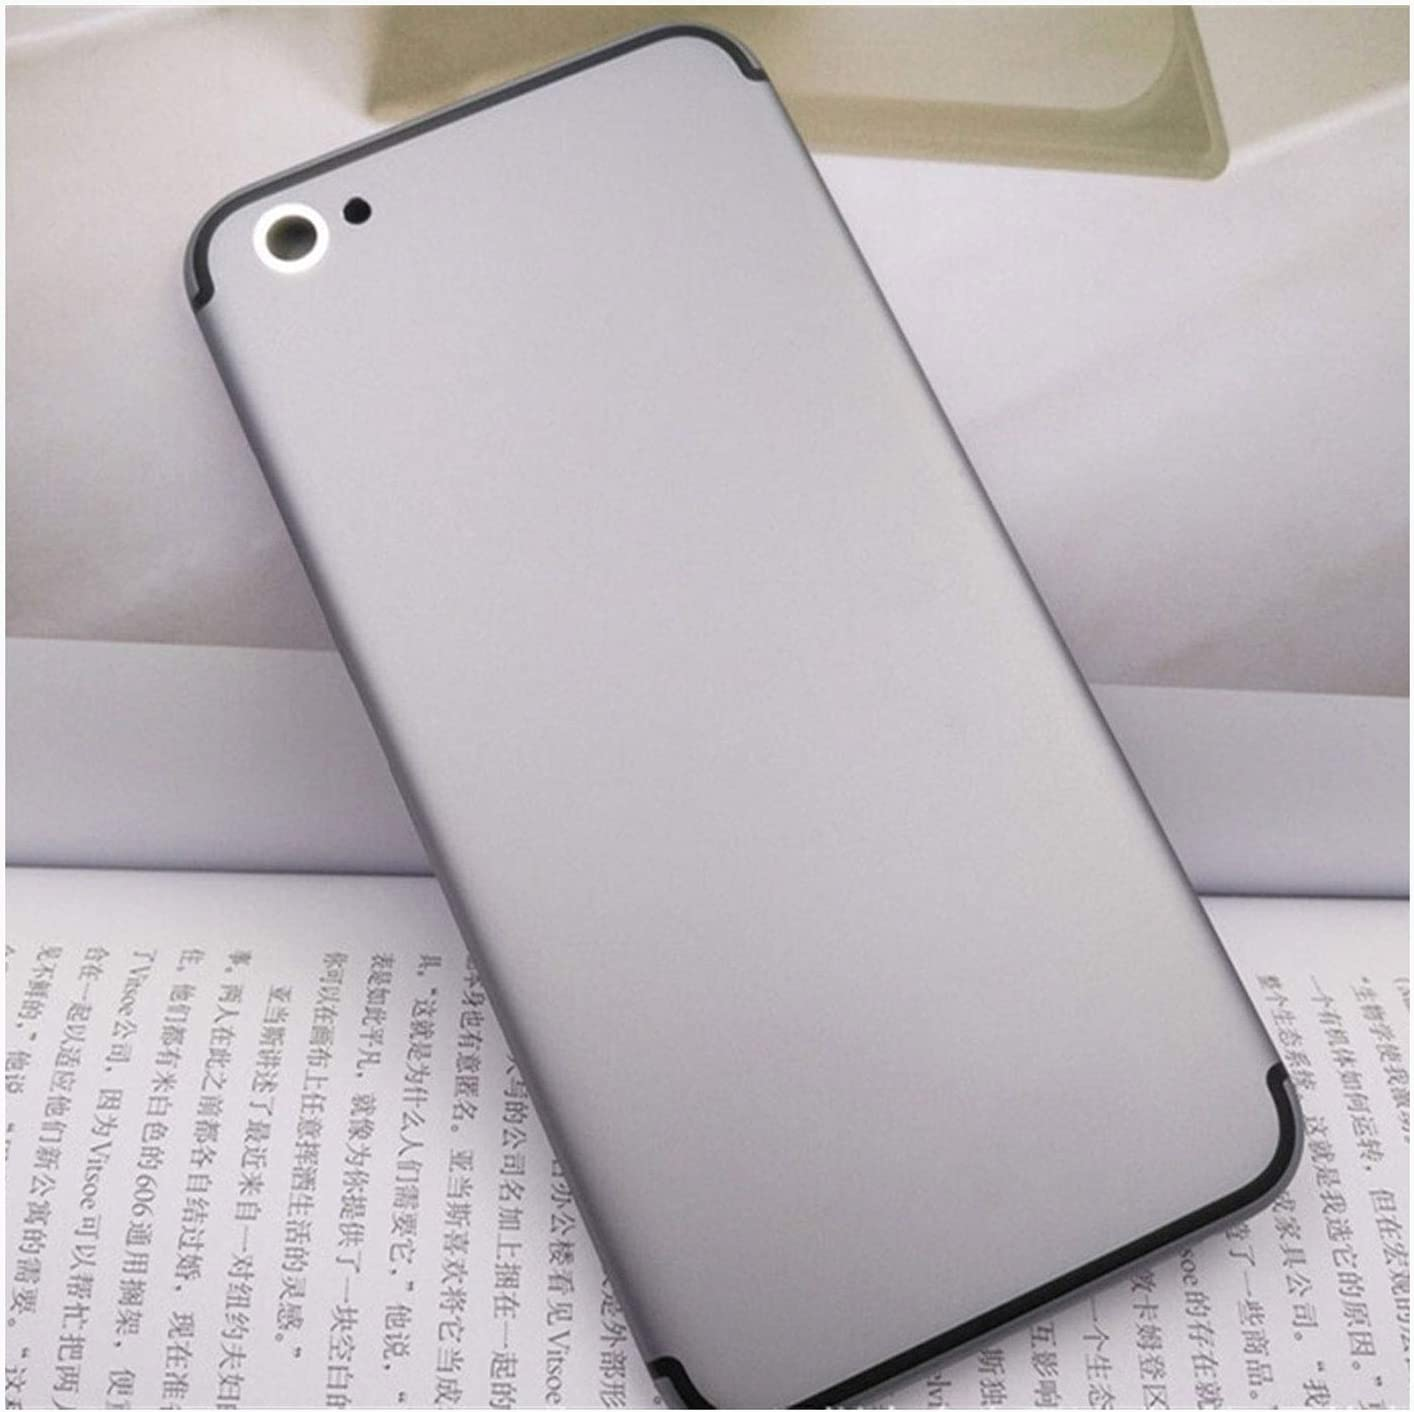 QINGMEI Battery Max 46% OFF Cover Rear Glass Repair Back SEAL limited product kit She Phone